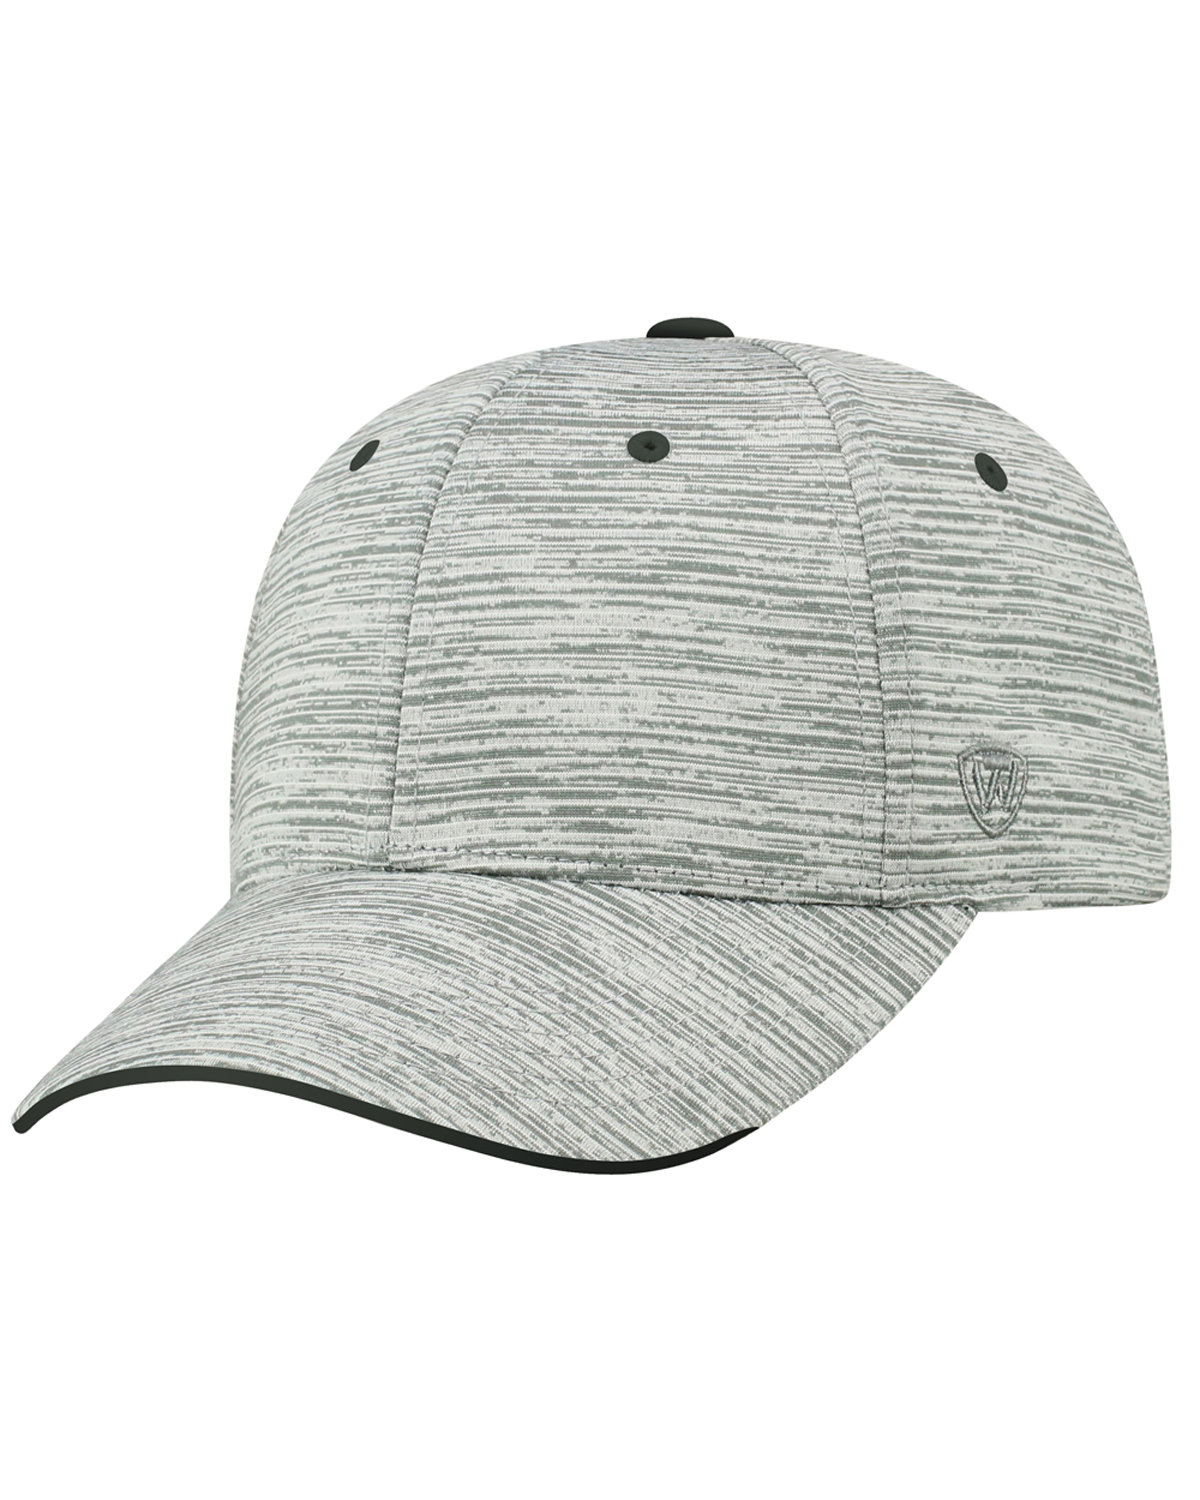 Top Of The World Adult Ballaholla Cap BLACK